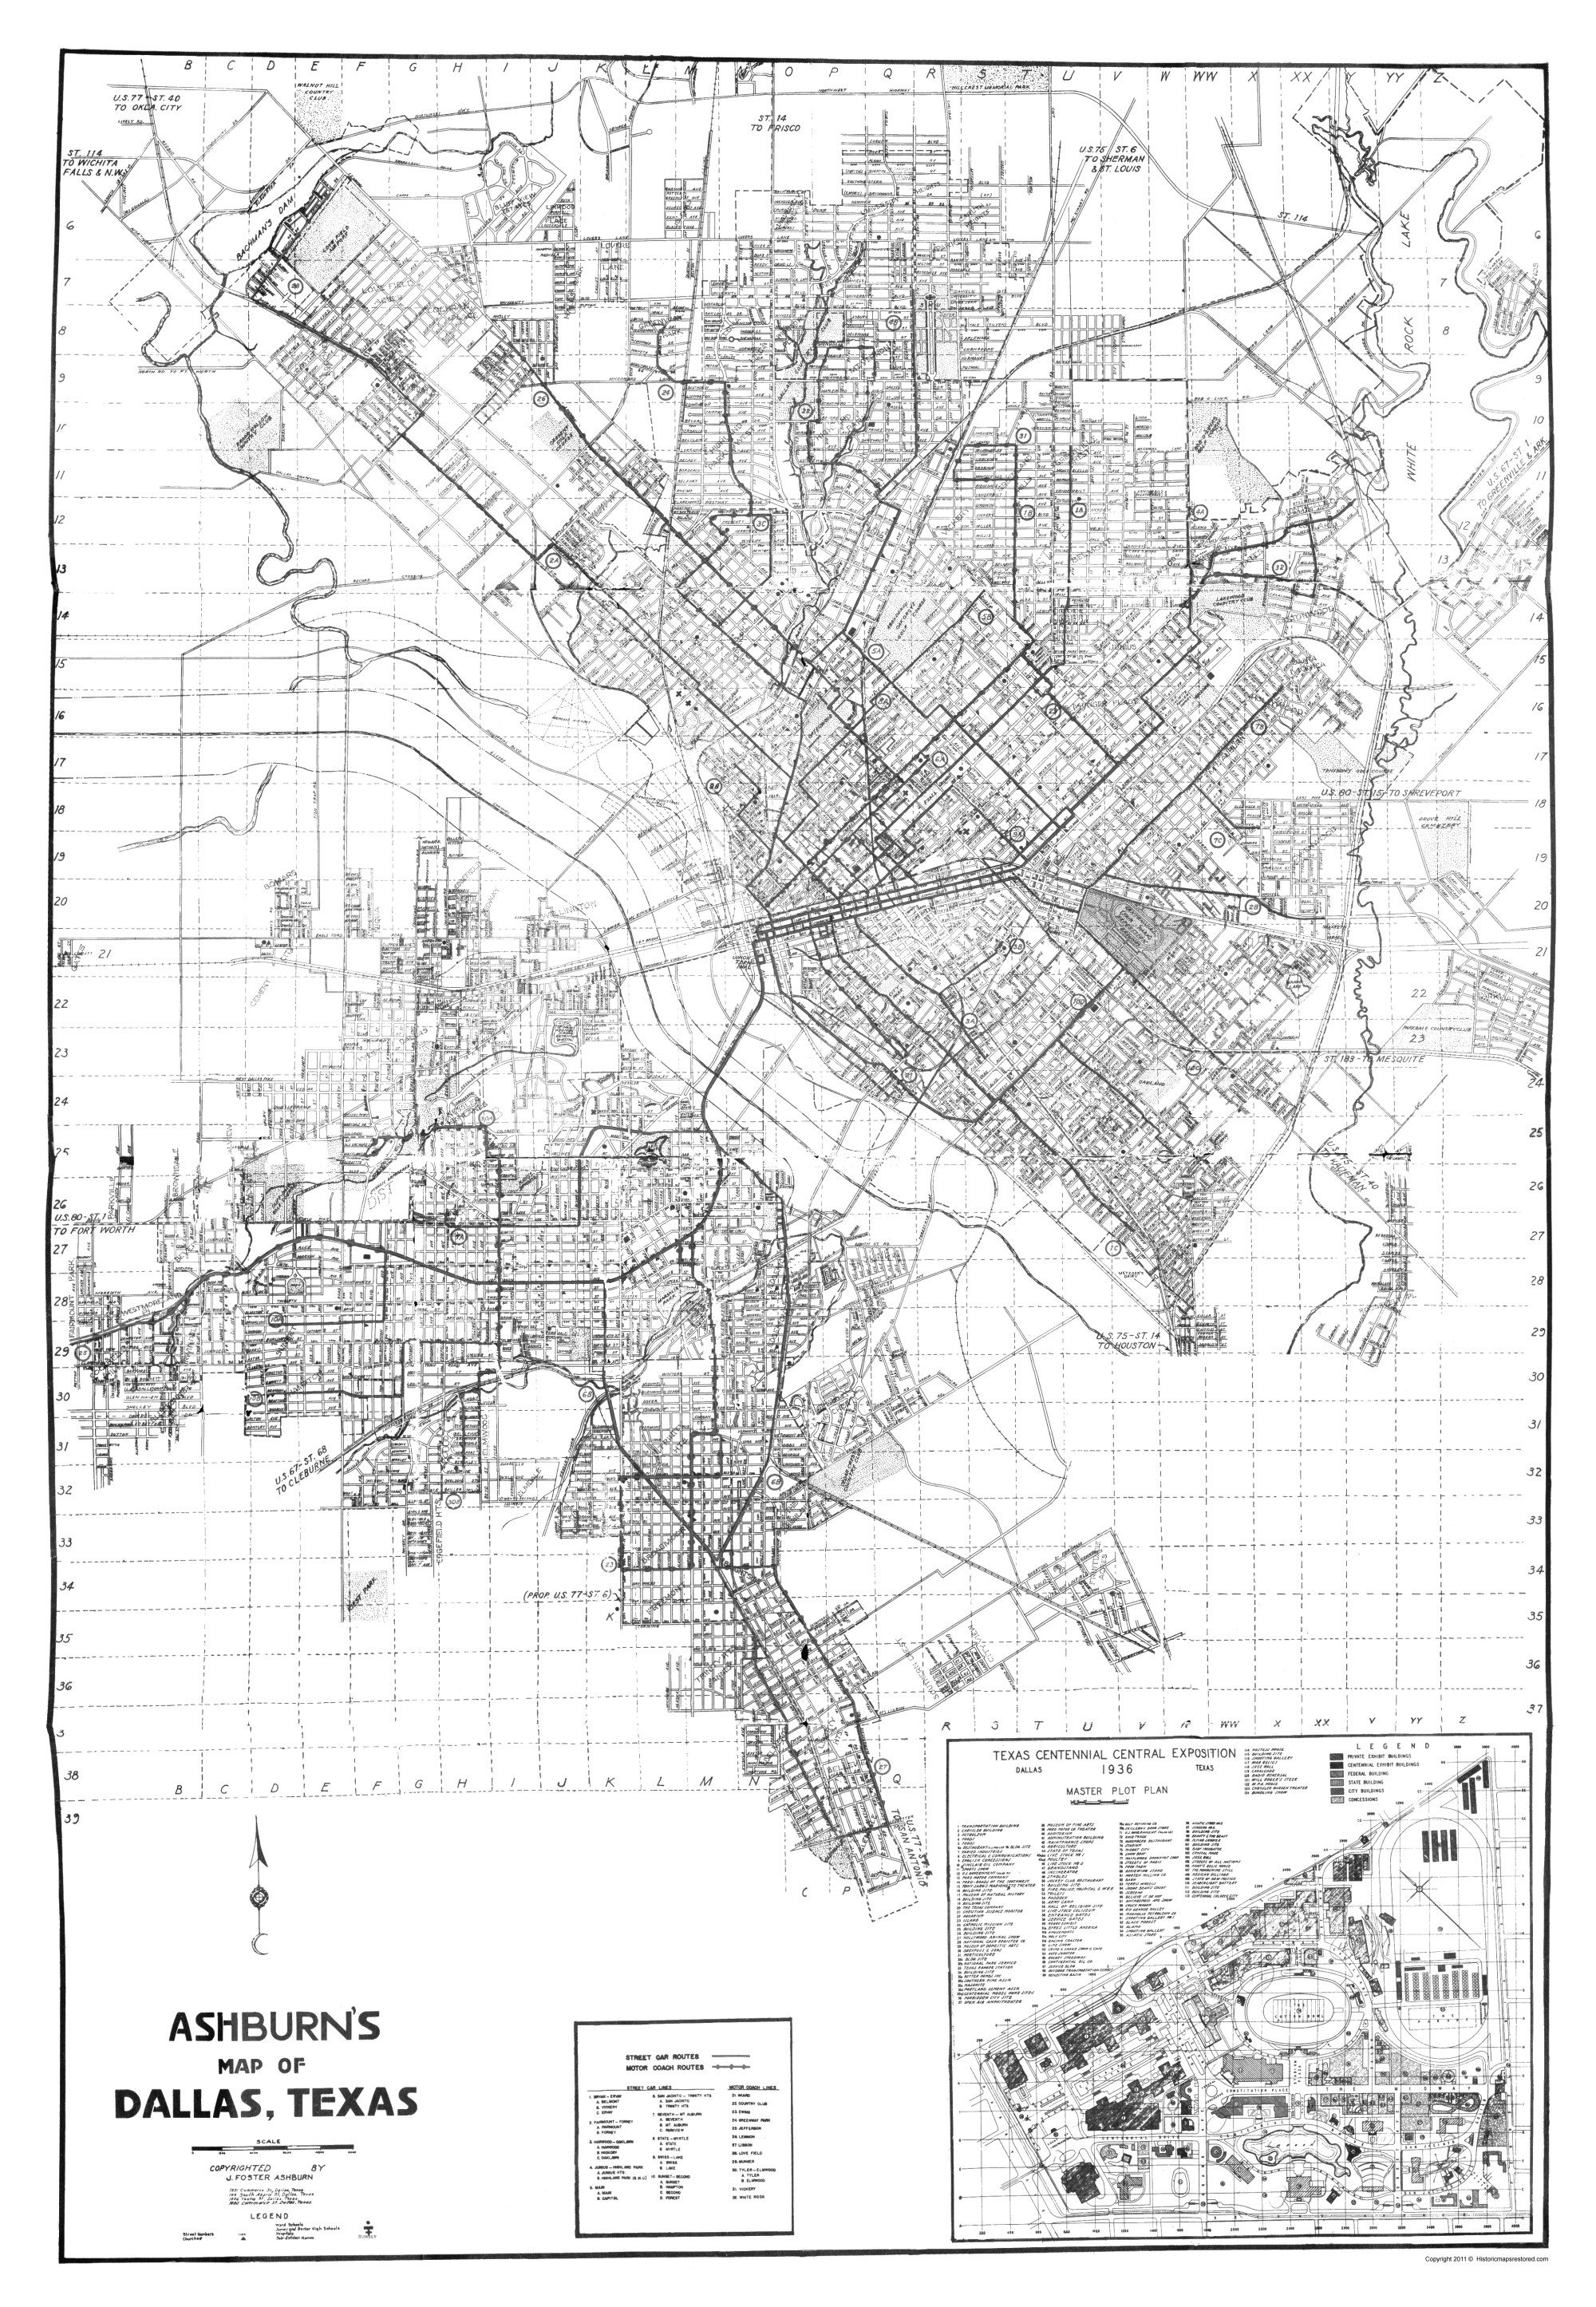 Old Dallas Map.Old City Map Dallas Texas Ashburn 1936